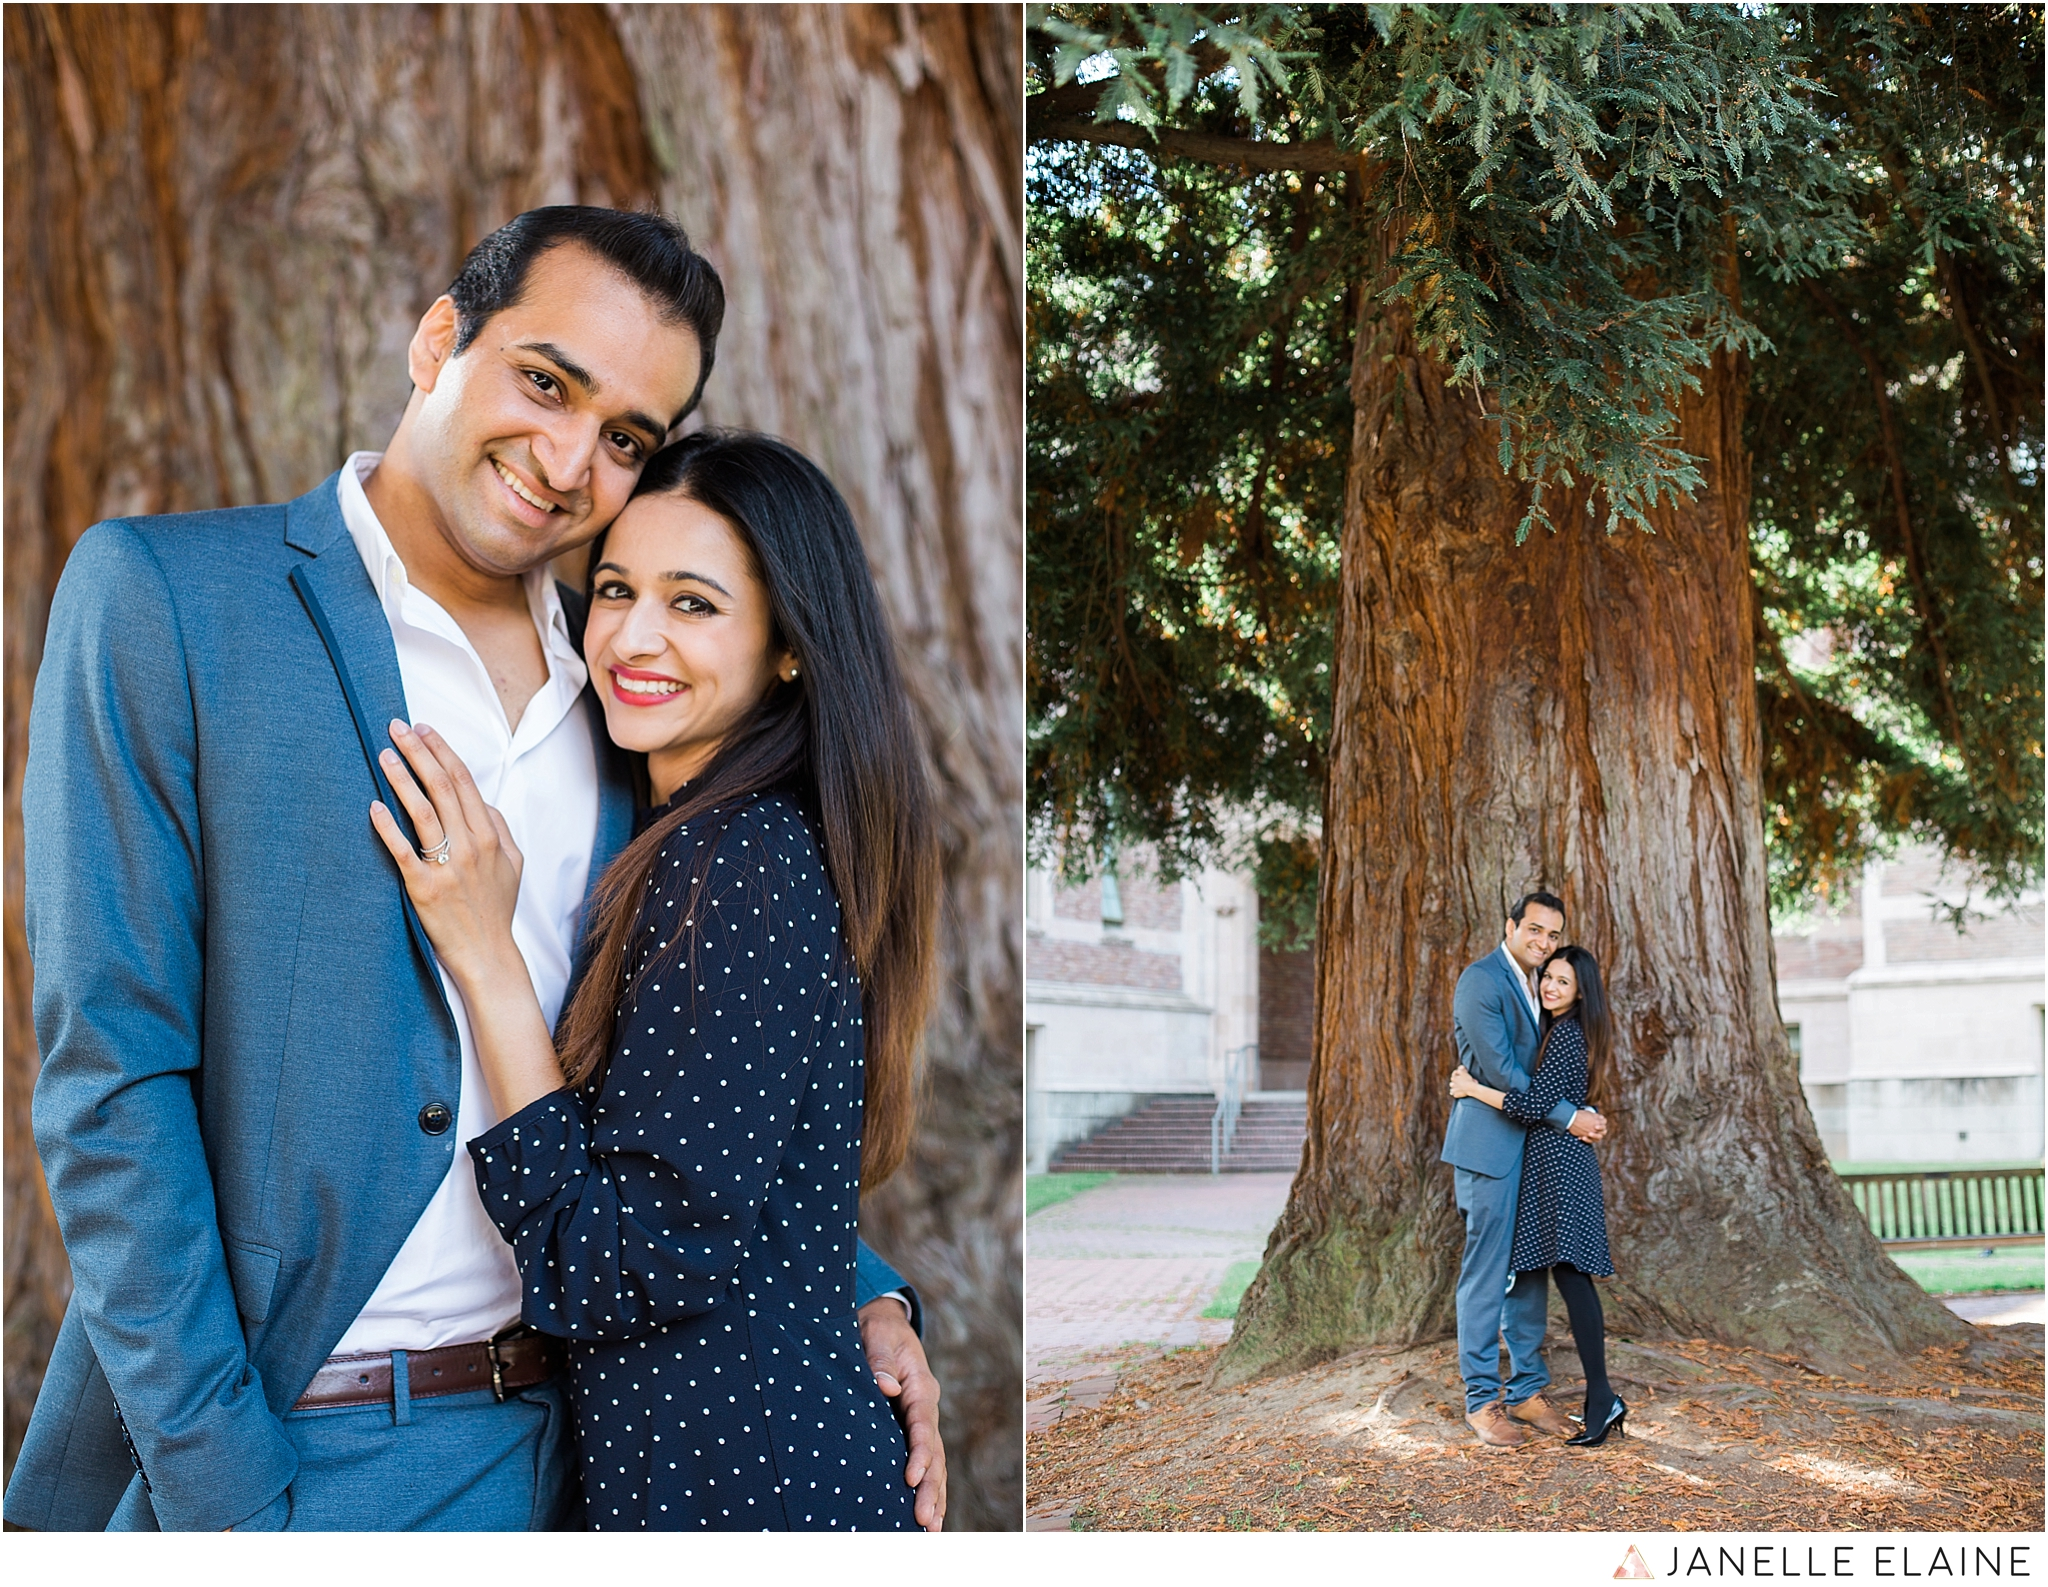 janelle elaine photography-zain and umema-seattle-uw-red square-engagement-photographer-10.jpg